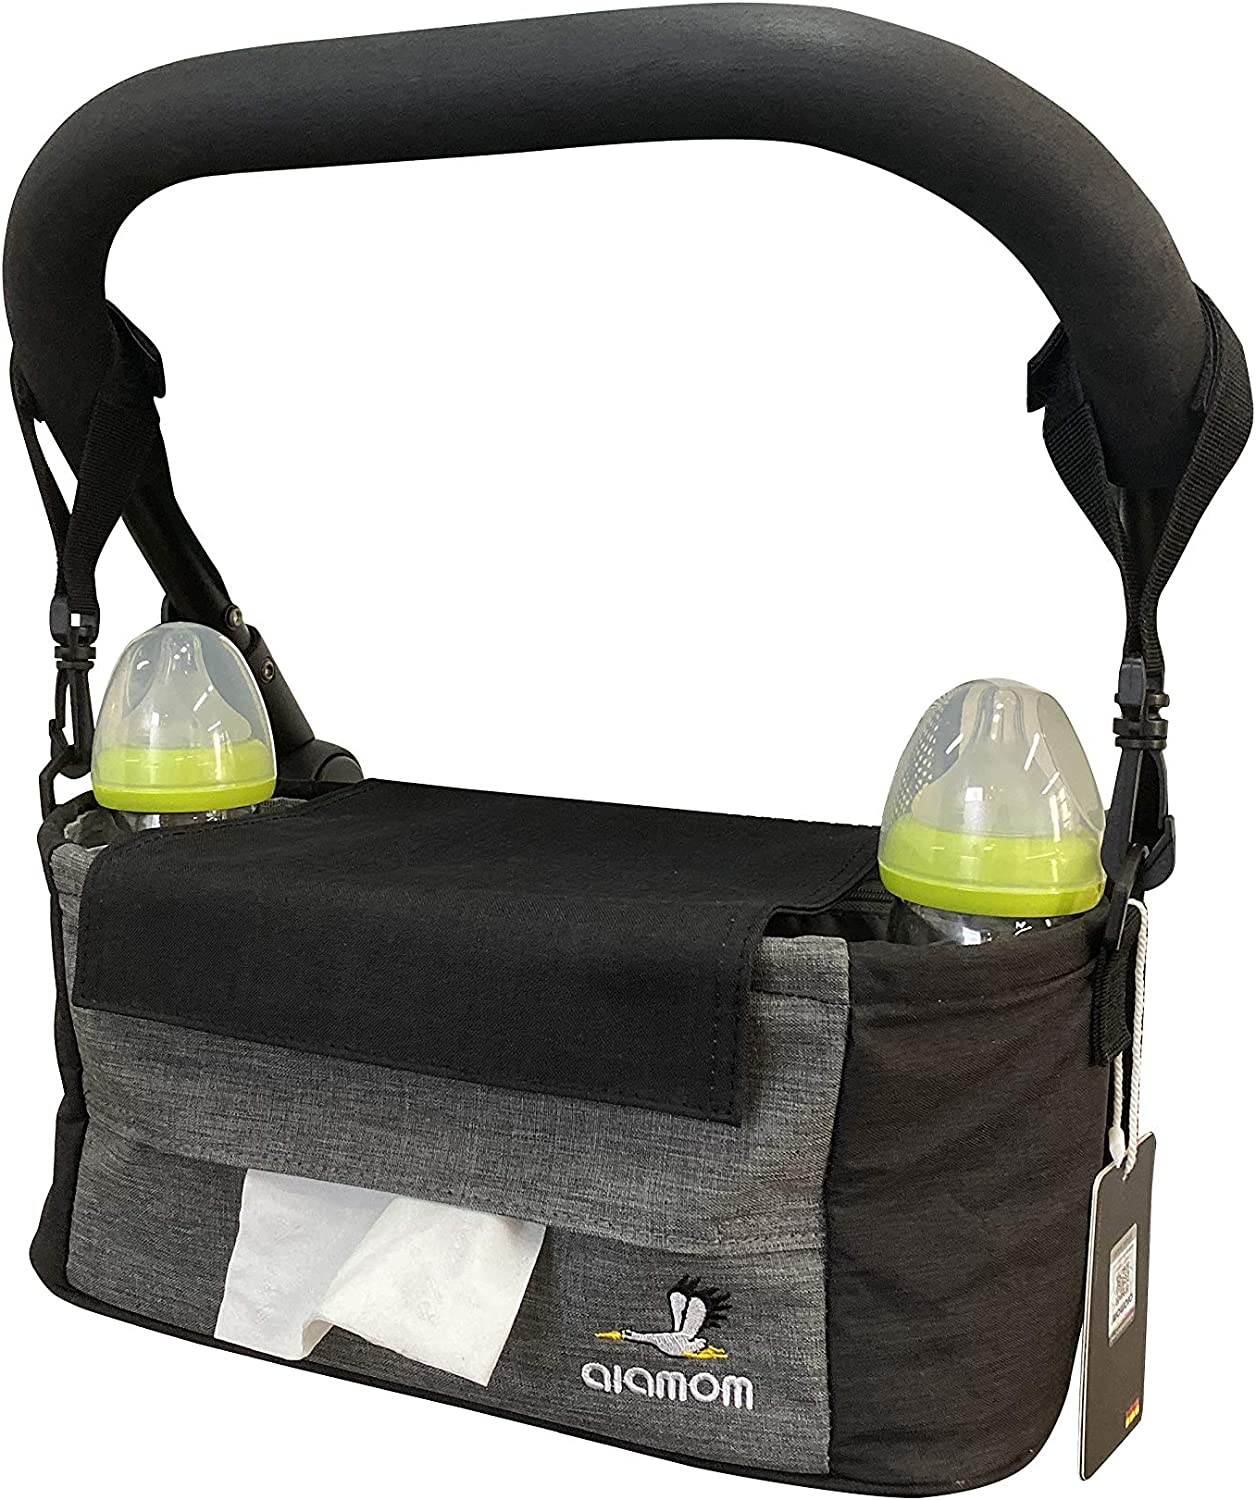 Stroller Organizer with Cup Holders- Large space stroller organizer(15X6.3.X6in)-Baby stroller storage bag that can be used as a shoulder bag-Universal Stroller Organizer